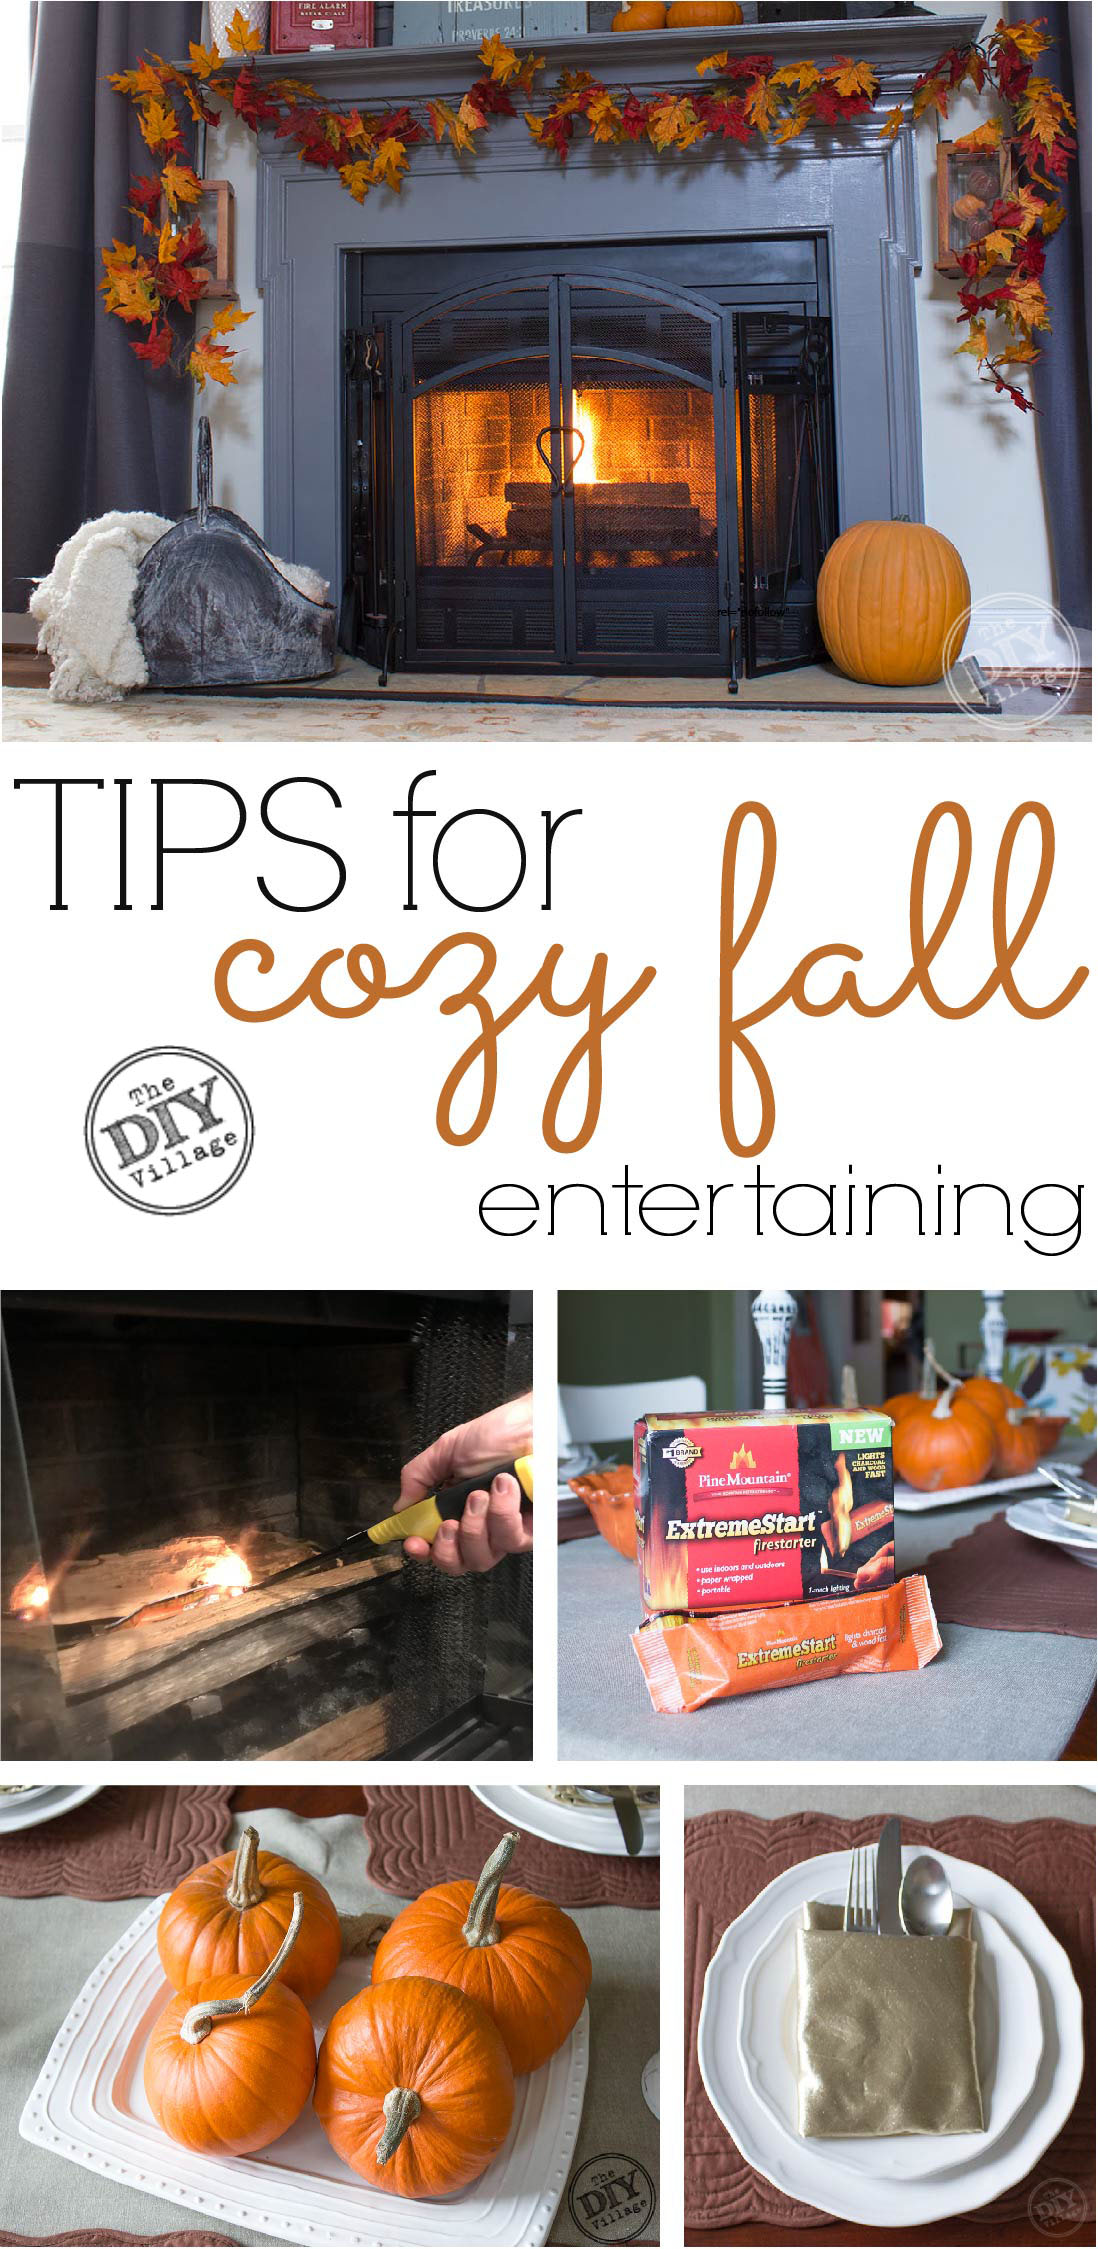 Easy tips for creating a home for cozy fall entertaining, indoors and outdoors.